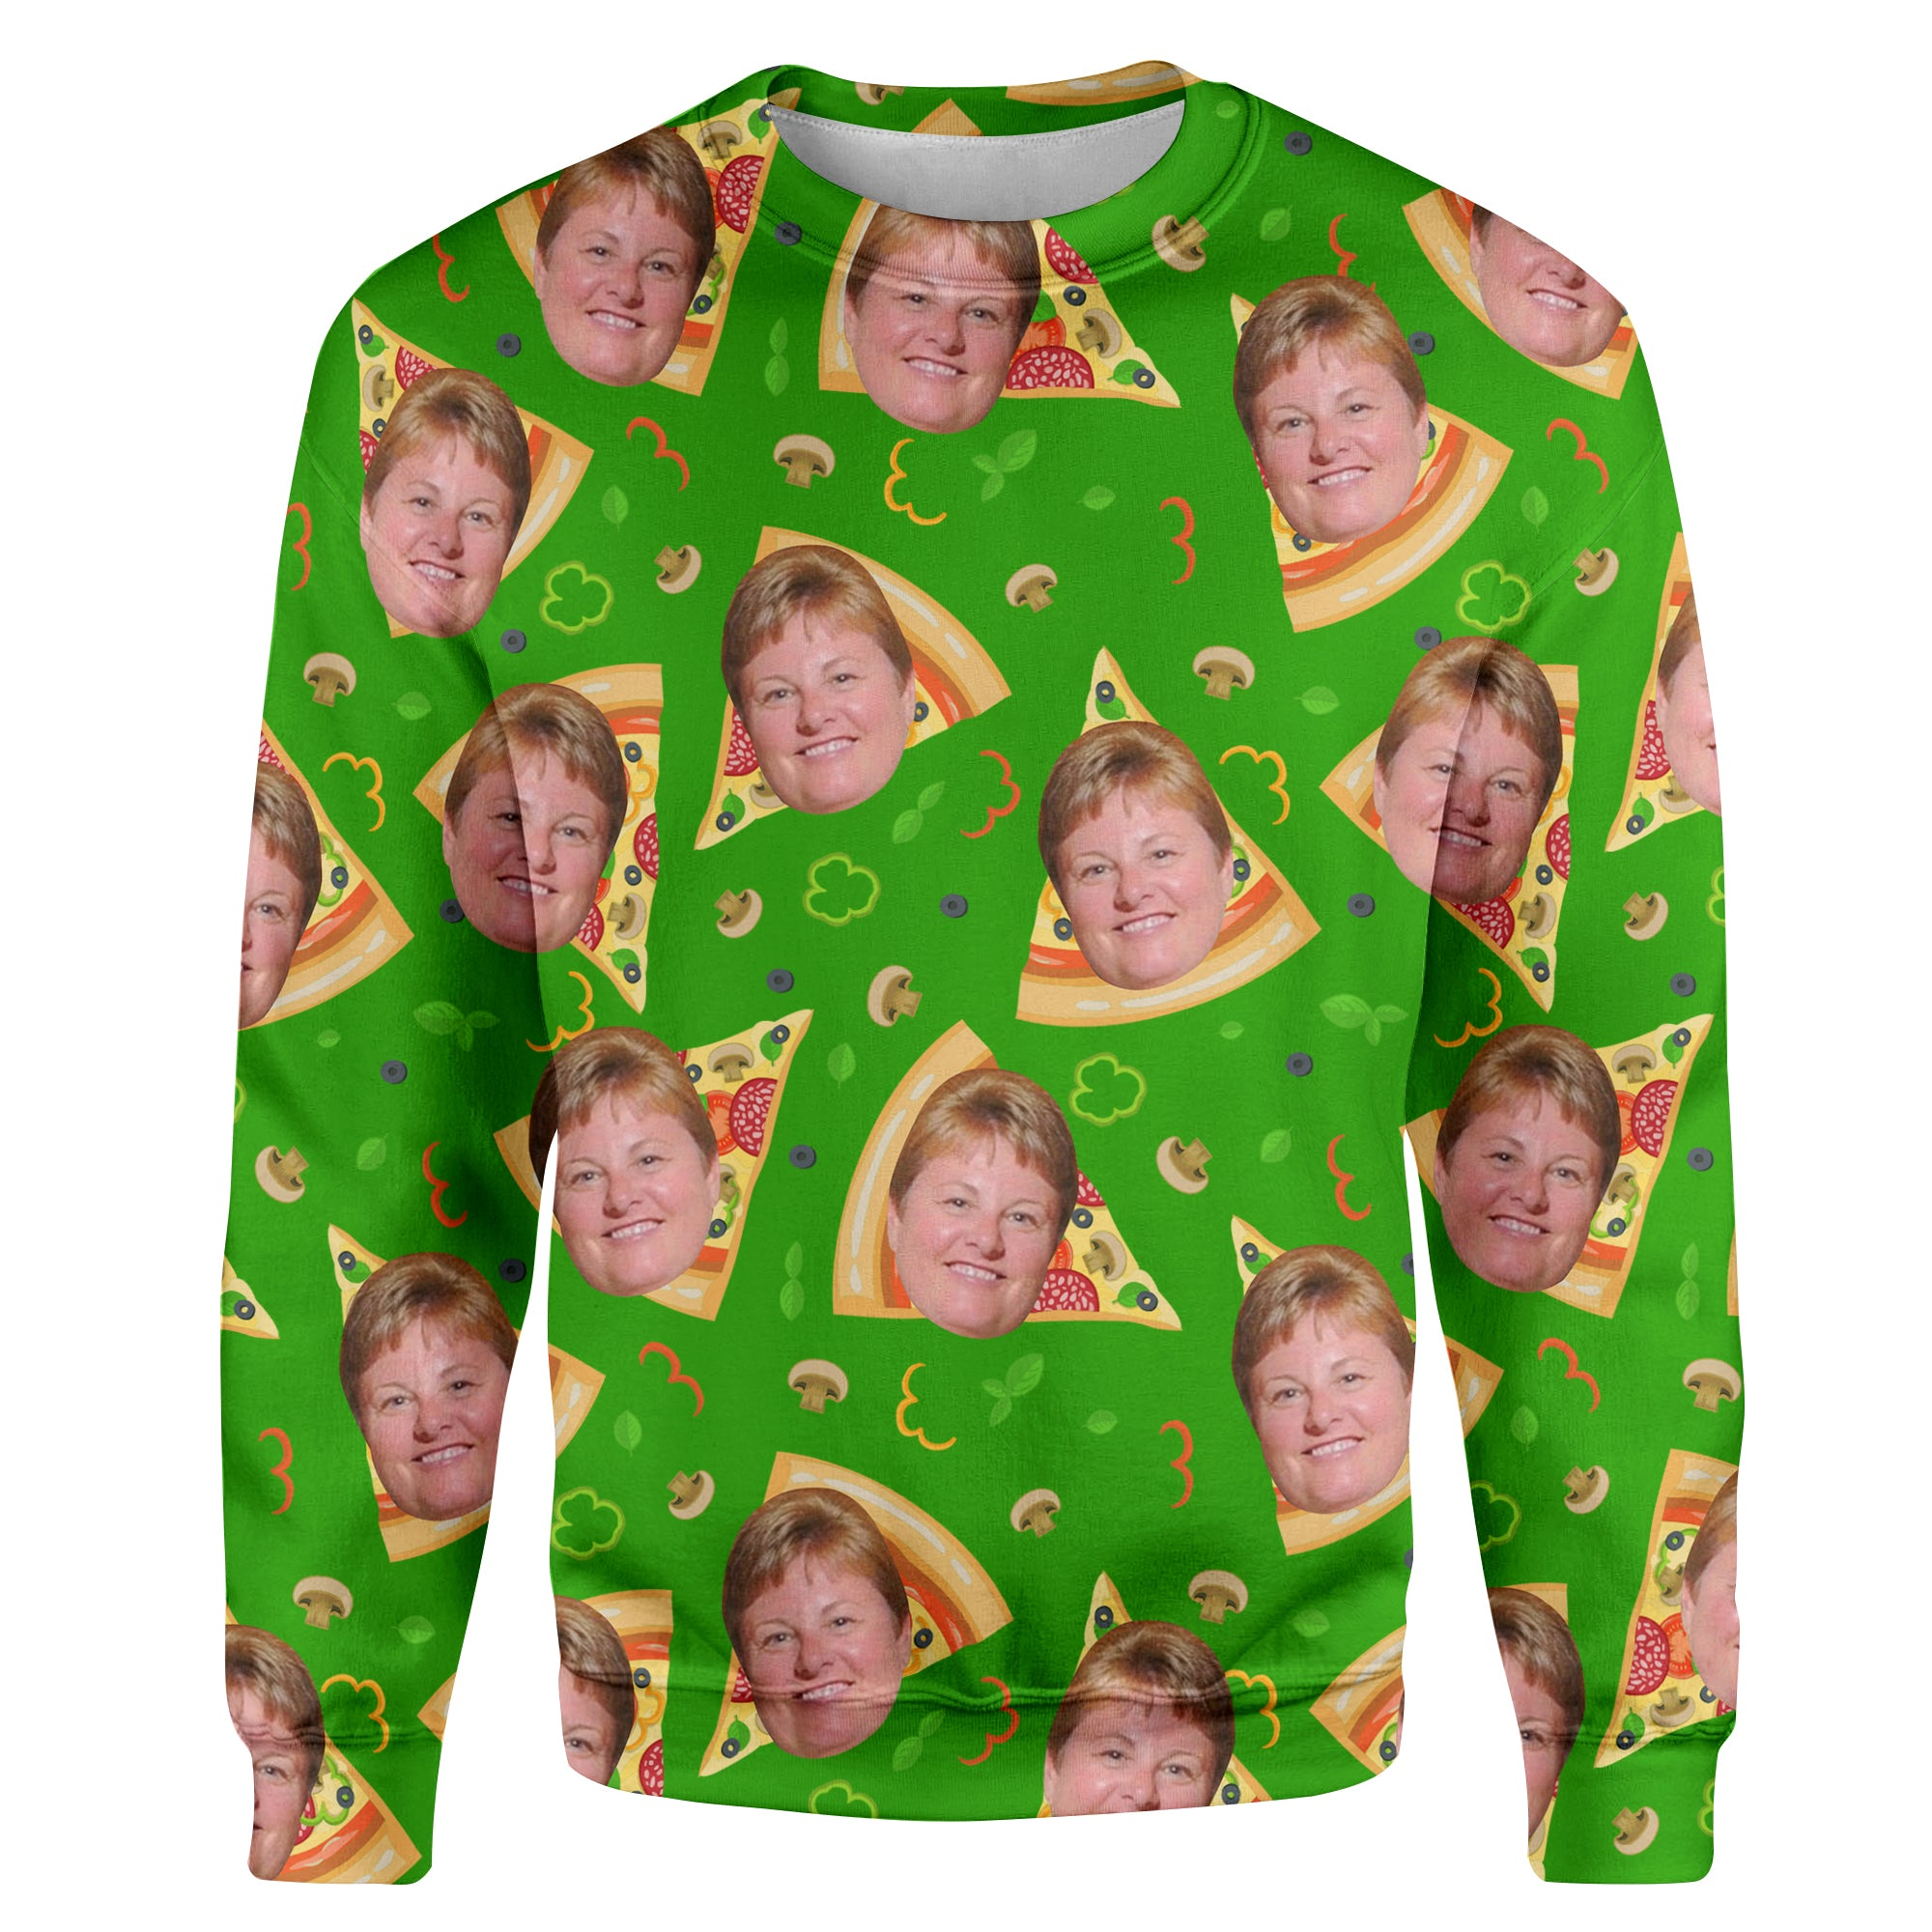 Green Matching Family Sweater - Personalized With Your Face